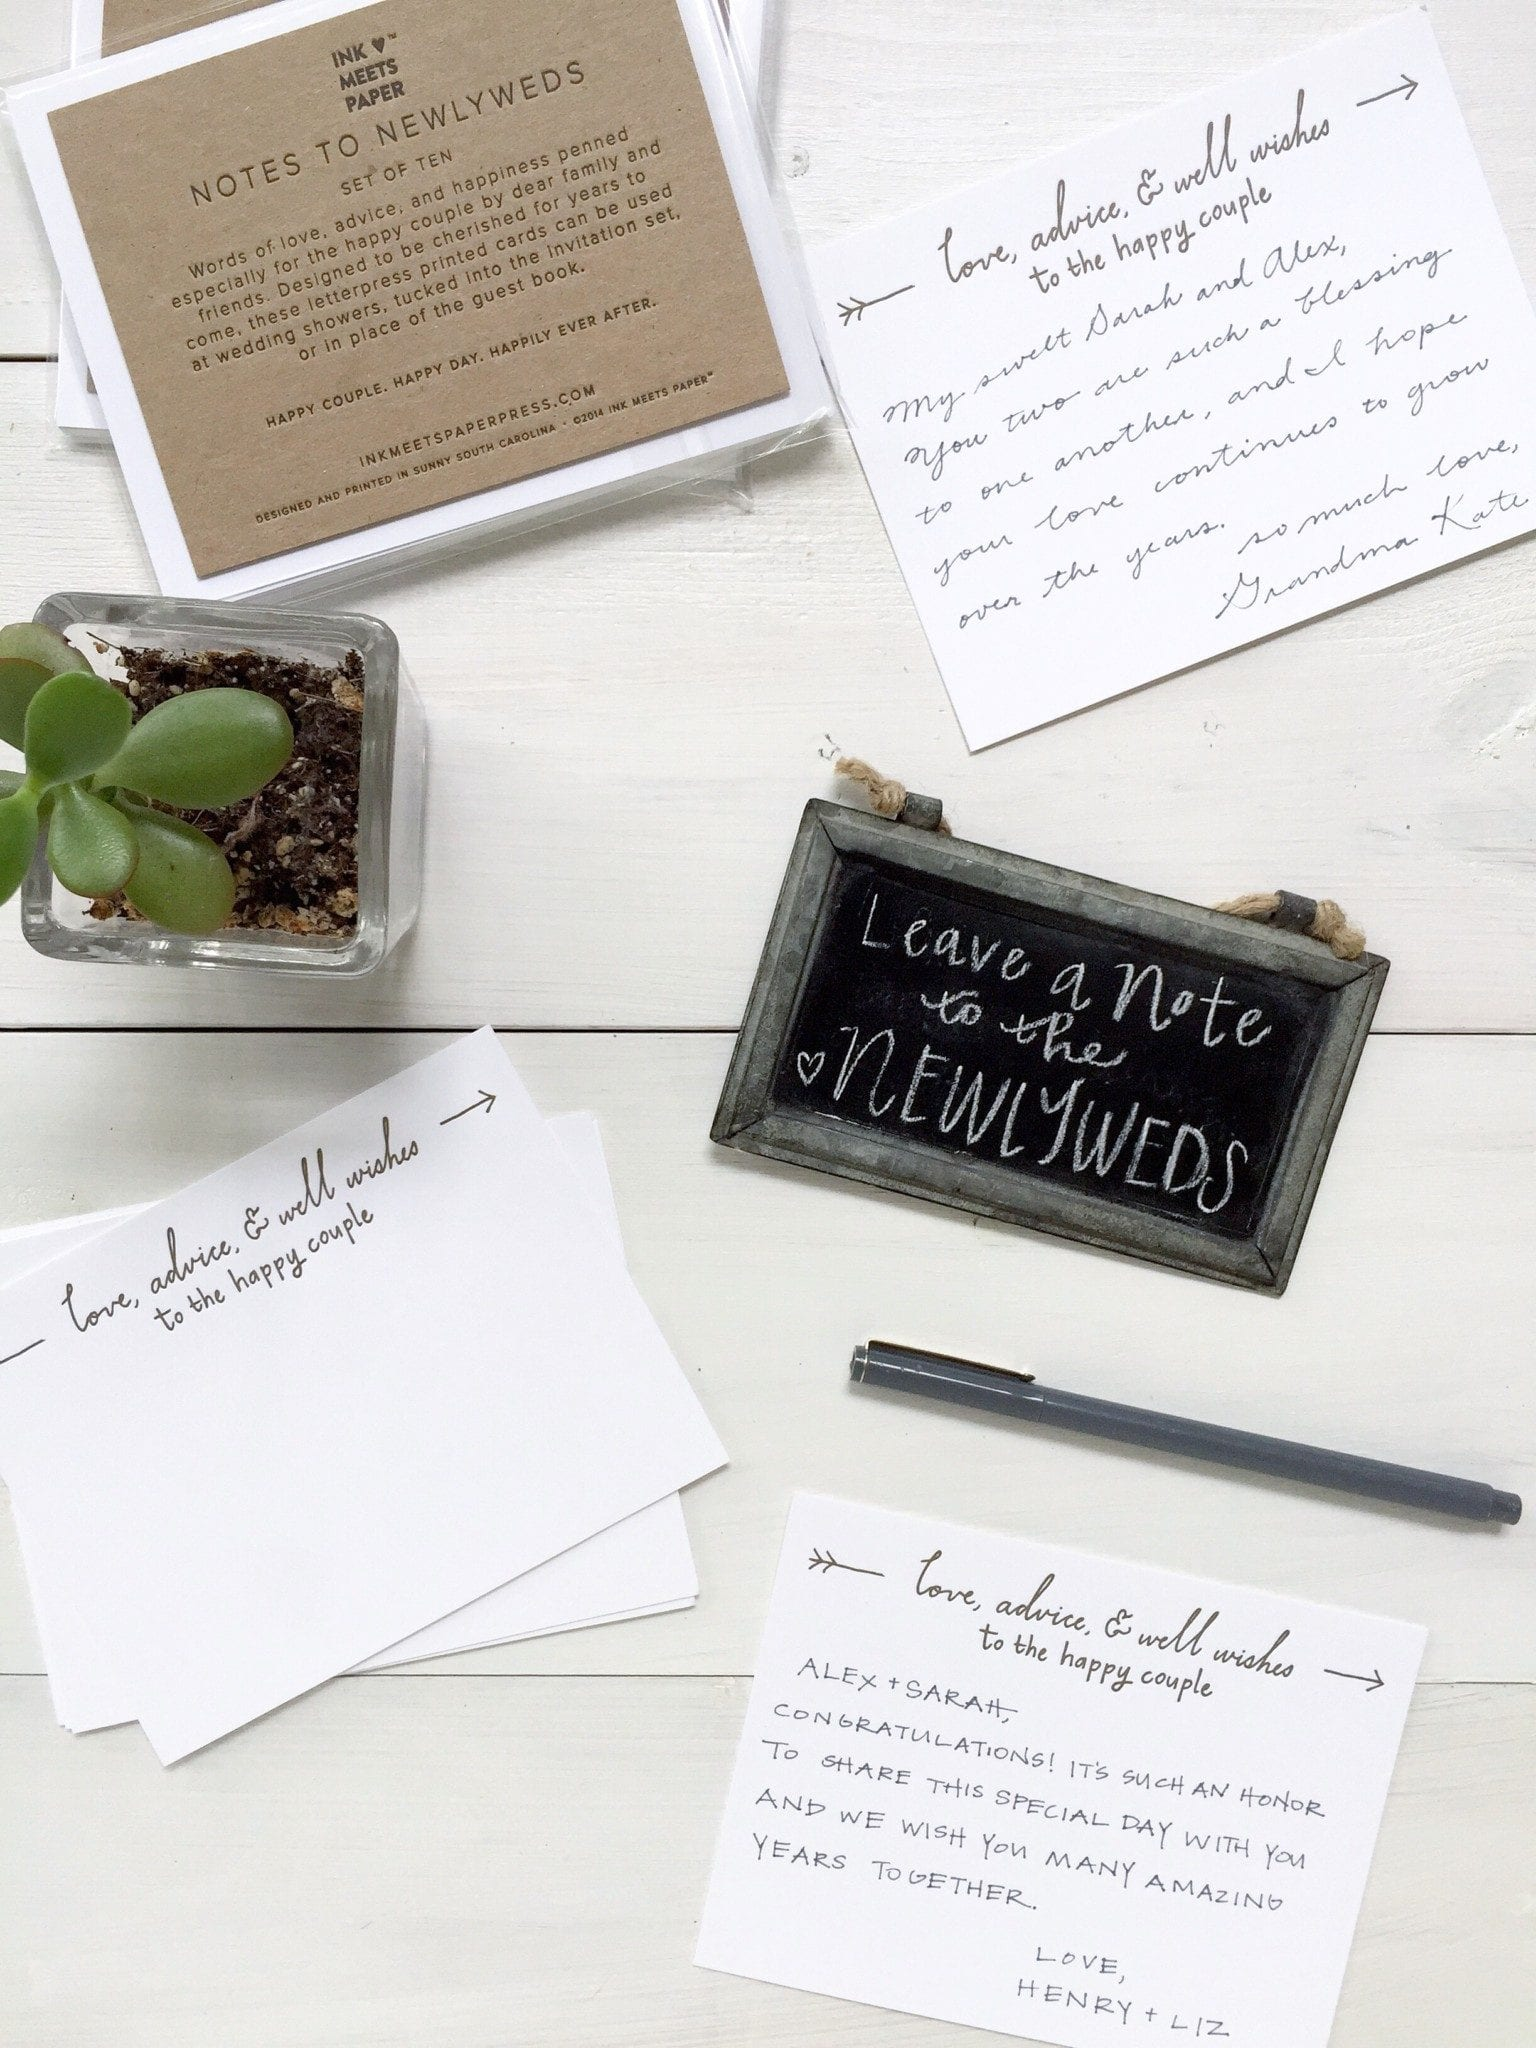 Adviced cards on a table filled out with small chalkboard message and jade plant.